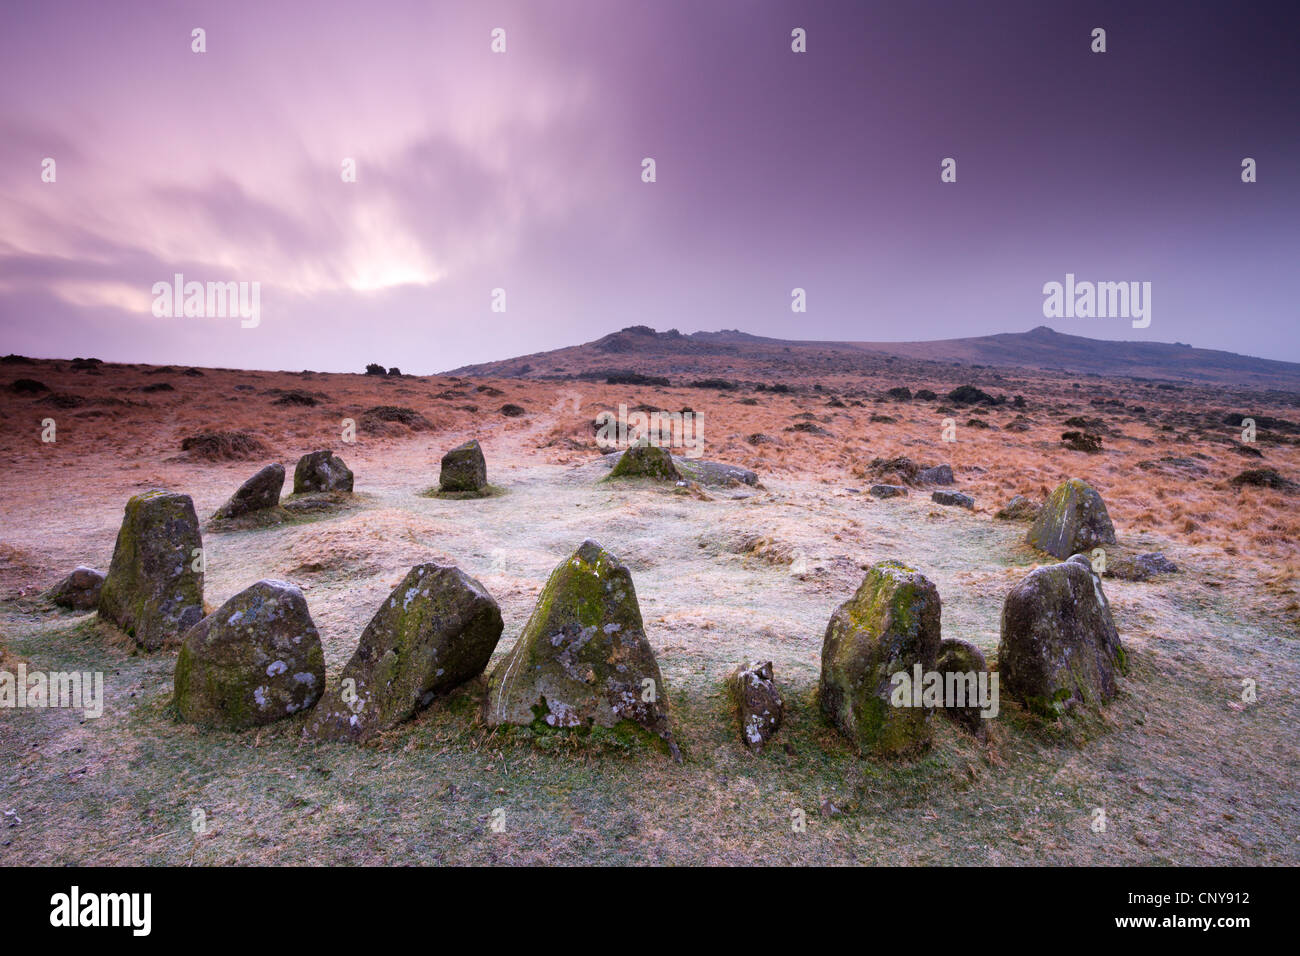 Stone circle cairn on Dartmoor, known as both the Nine Maidens and the Seventeen Brothers, Belstone Common, Dartmoor - Stock Image